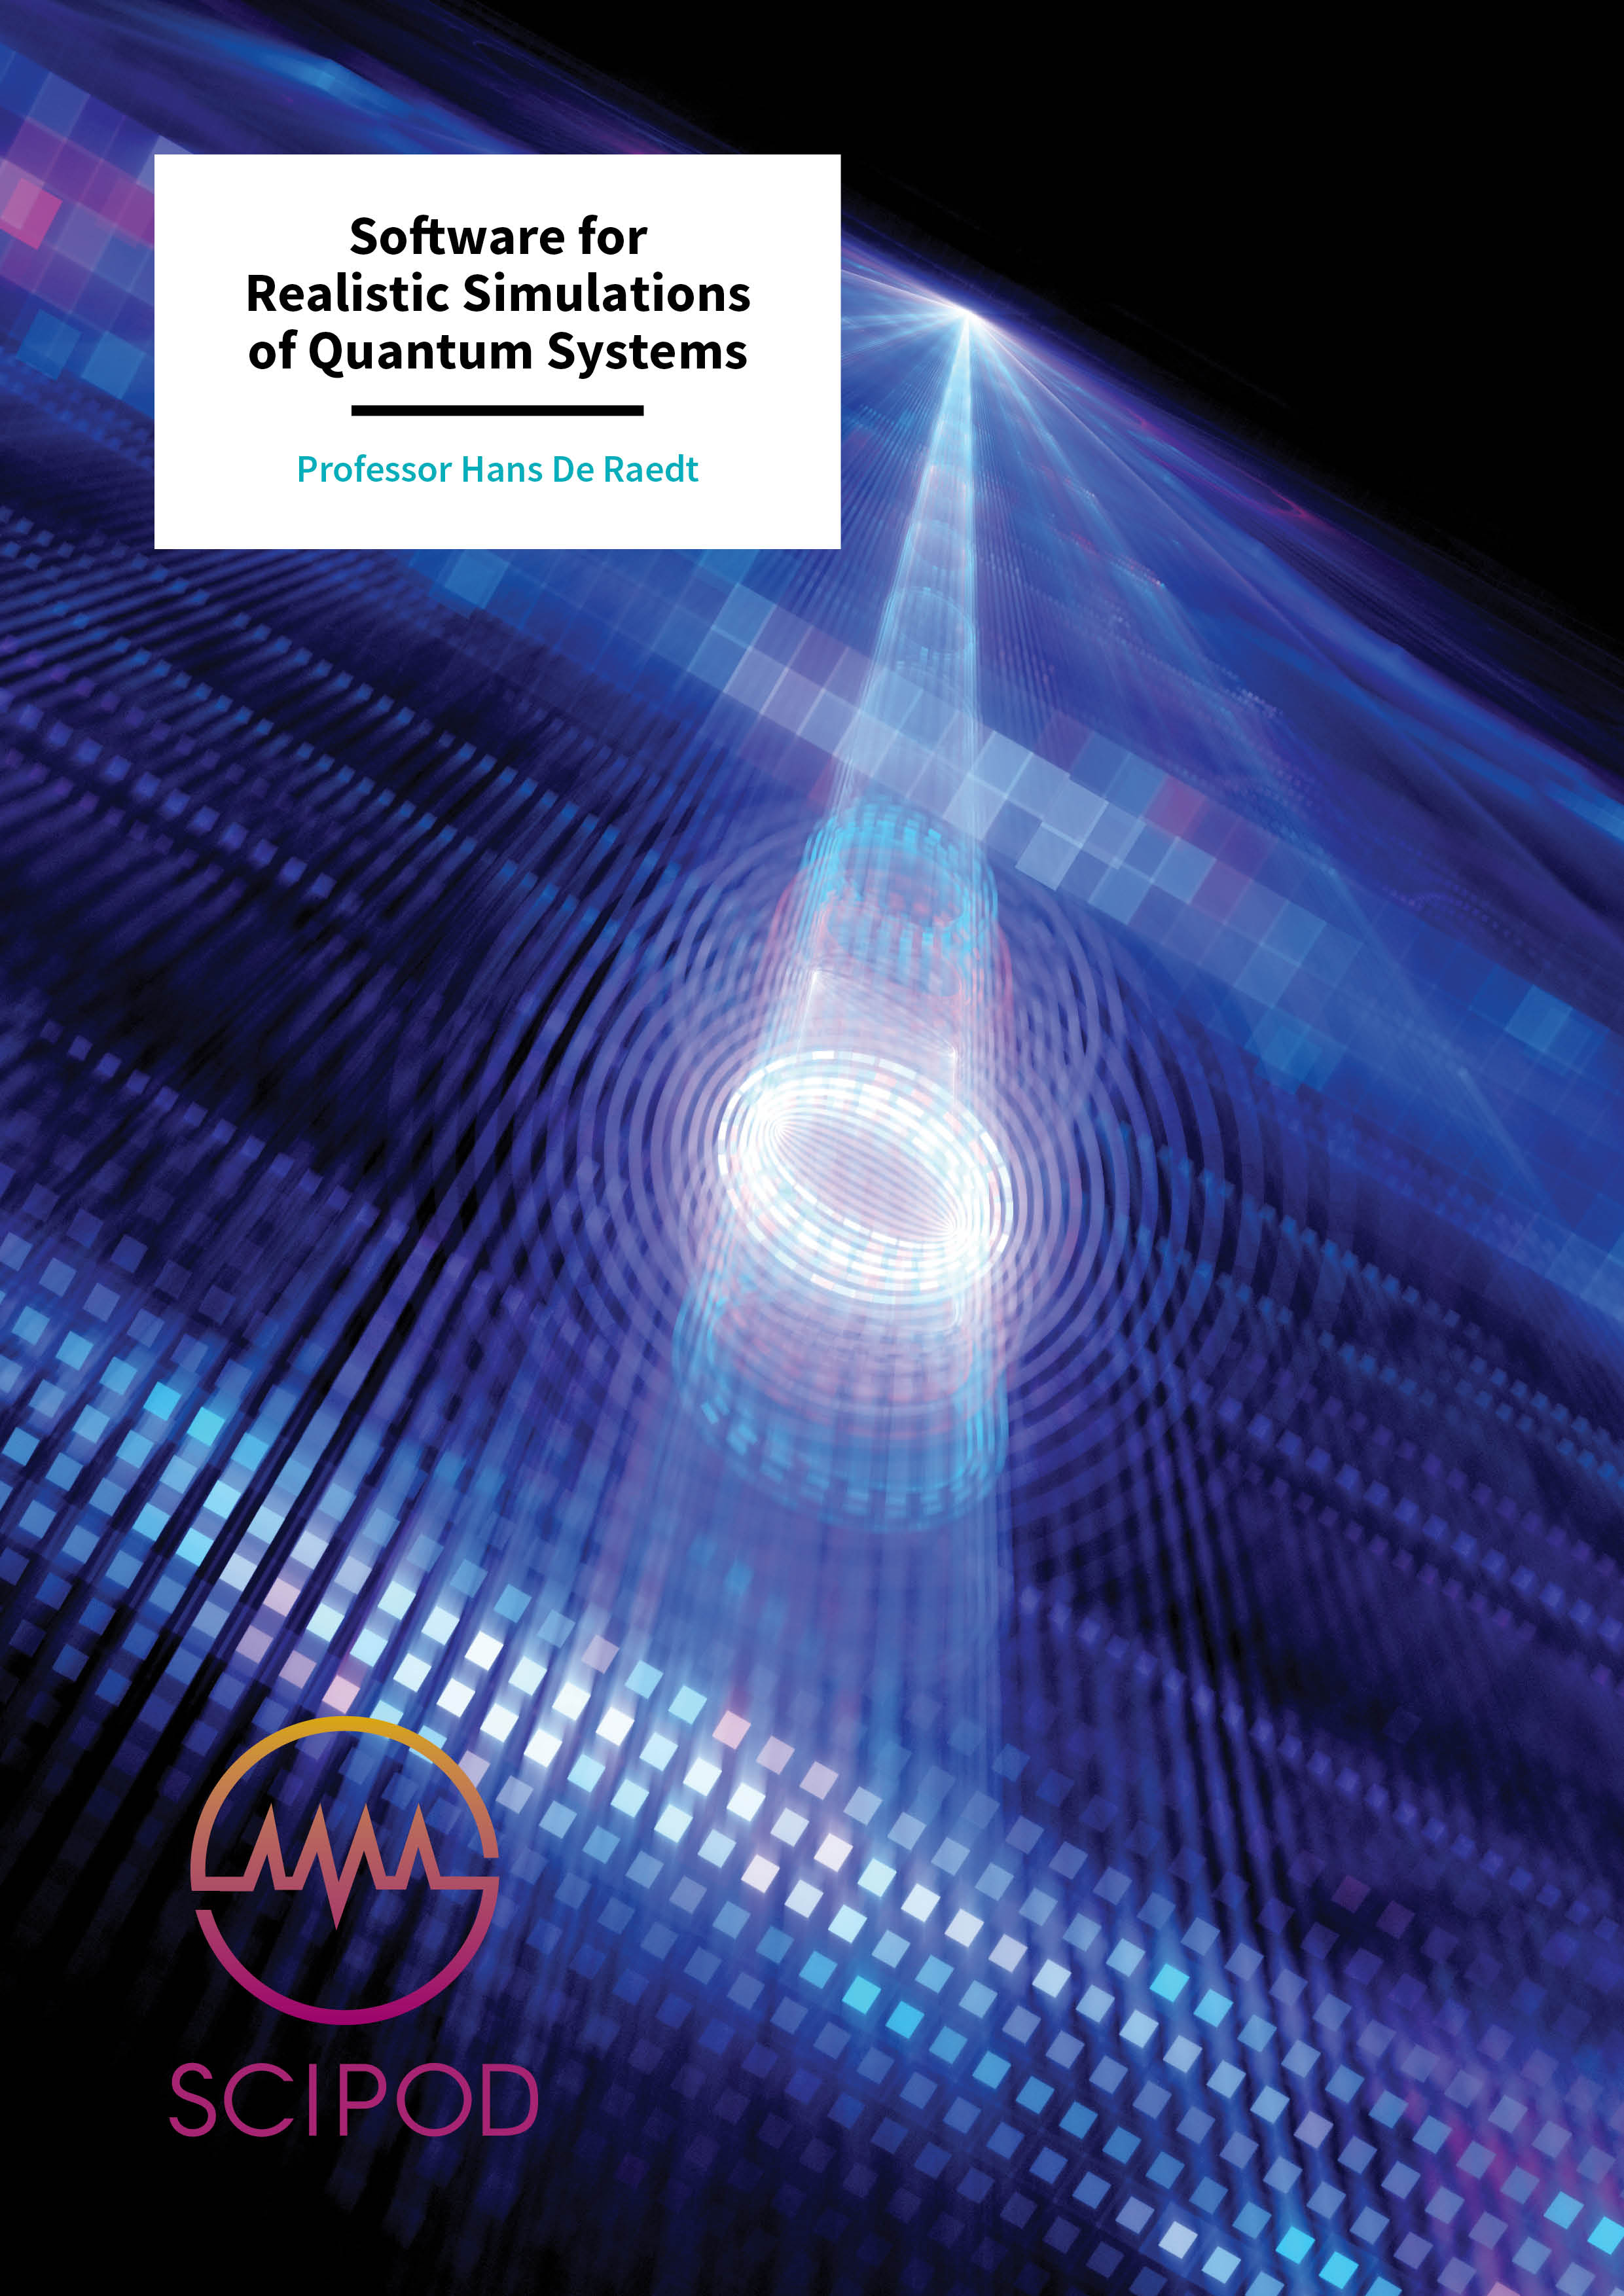 Software for Realistic Simulations of Quantum Systems – Professor Hans De Raedt, University of Groningen